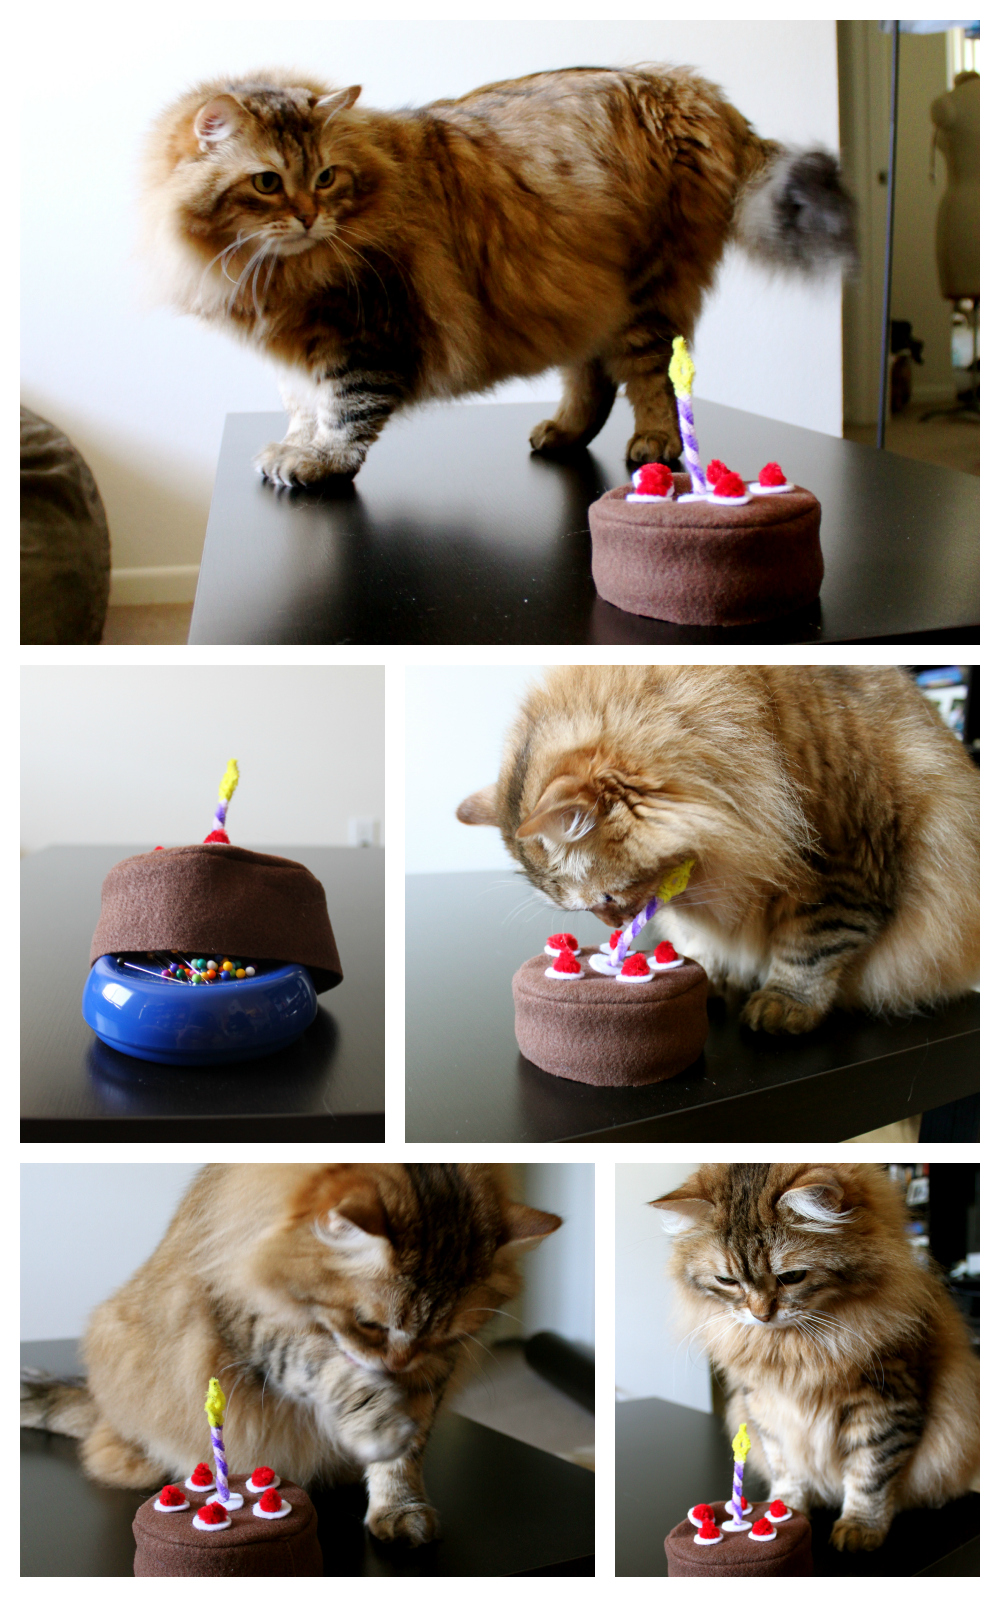 Cats don't know what to do with birthday cake.